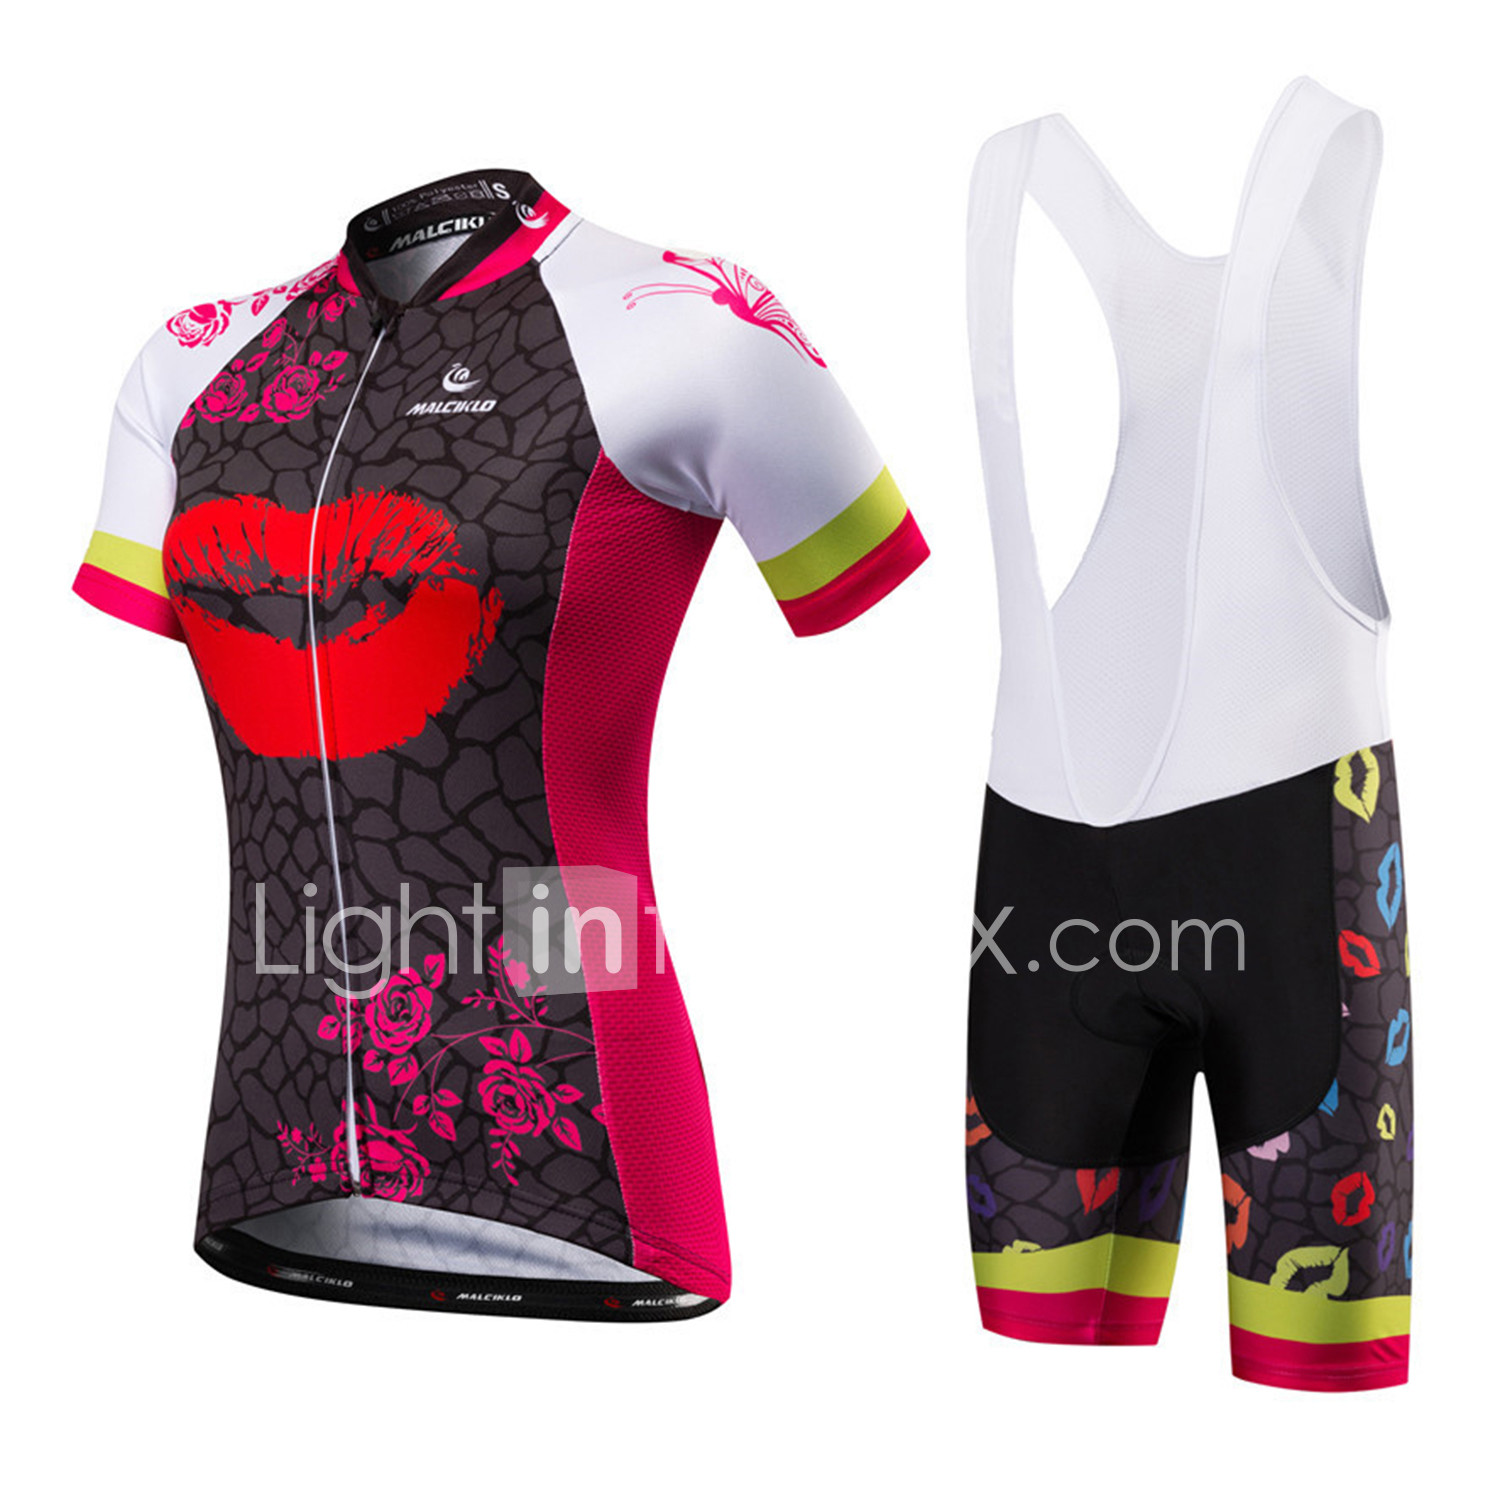 Malciklo Women s Short Sleeve Cycling Jersey with Bib Shorts - Red   White  Black   Red British Plus Size Bike Jersey Bib Tights Breathable Quick Dry  ... 71f111d44